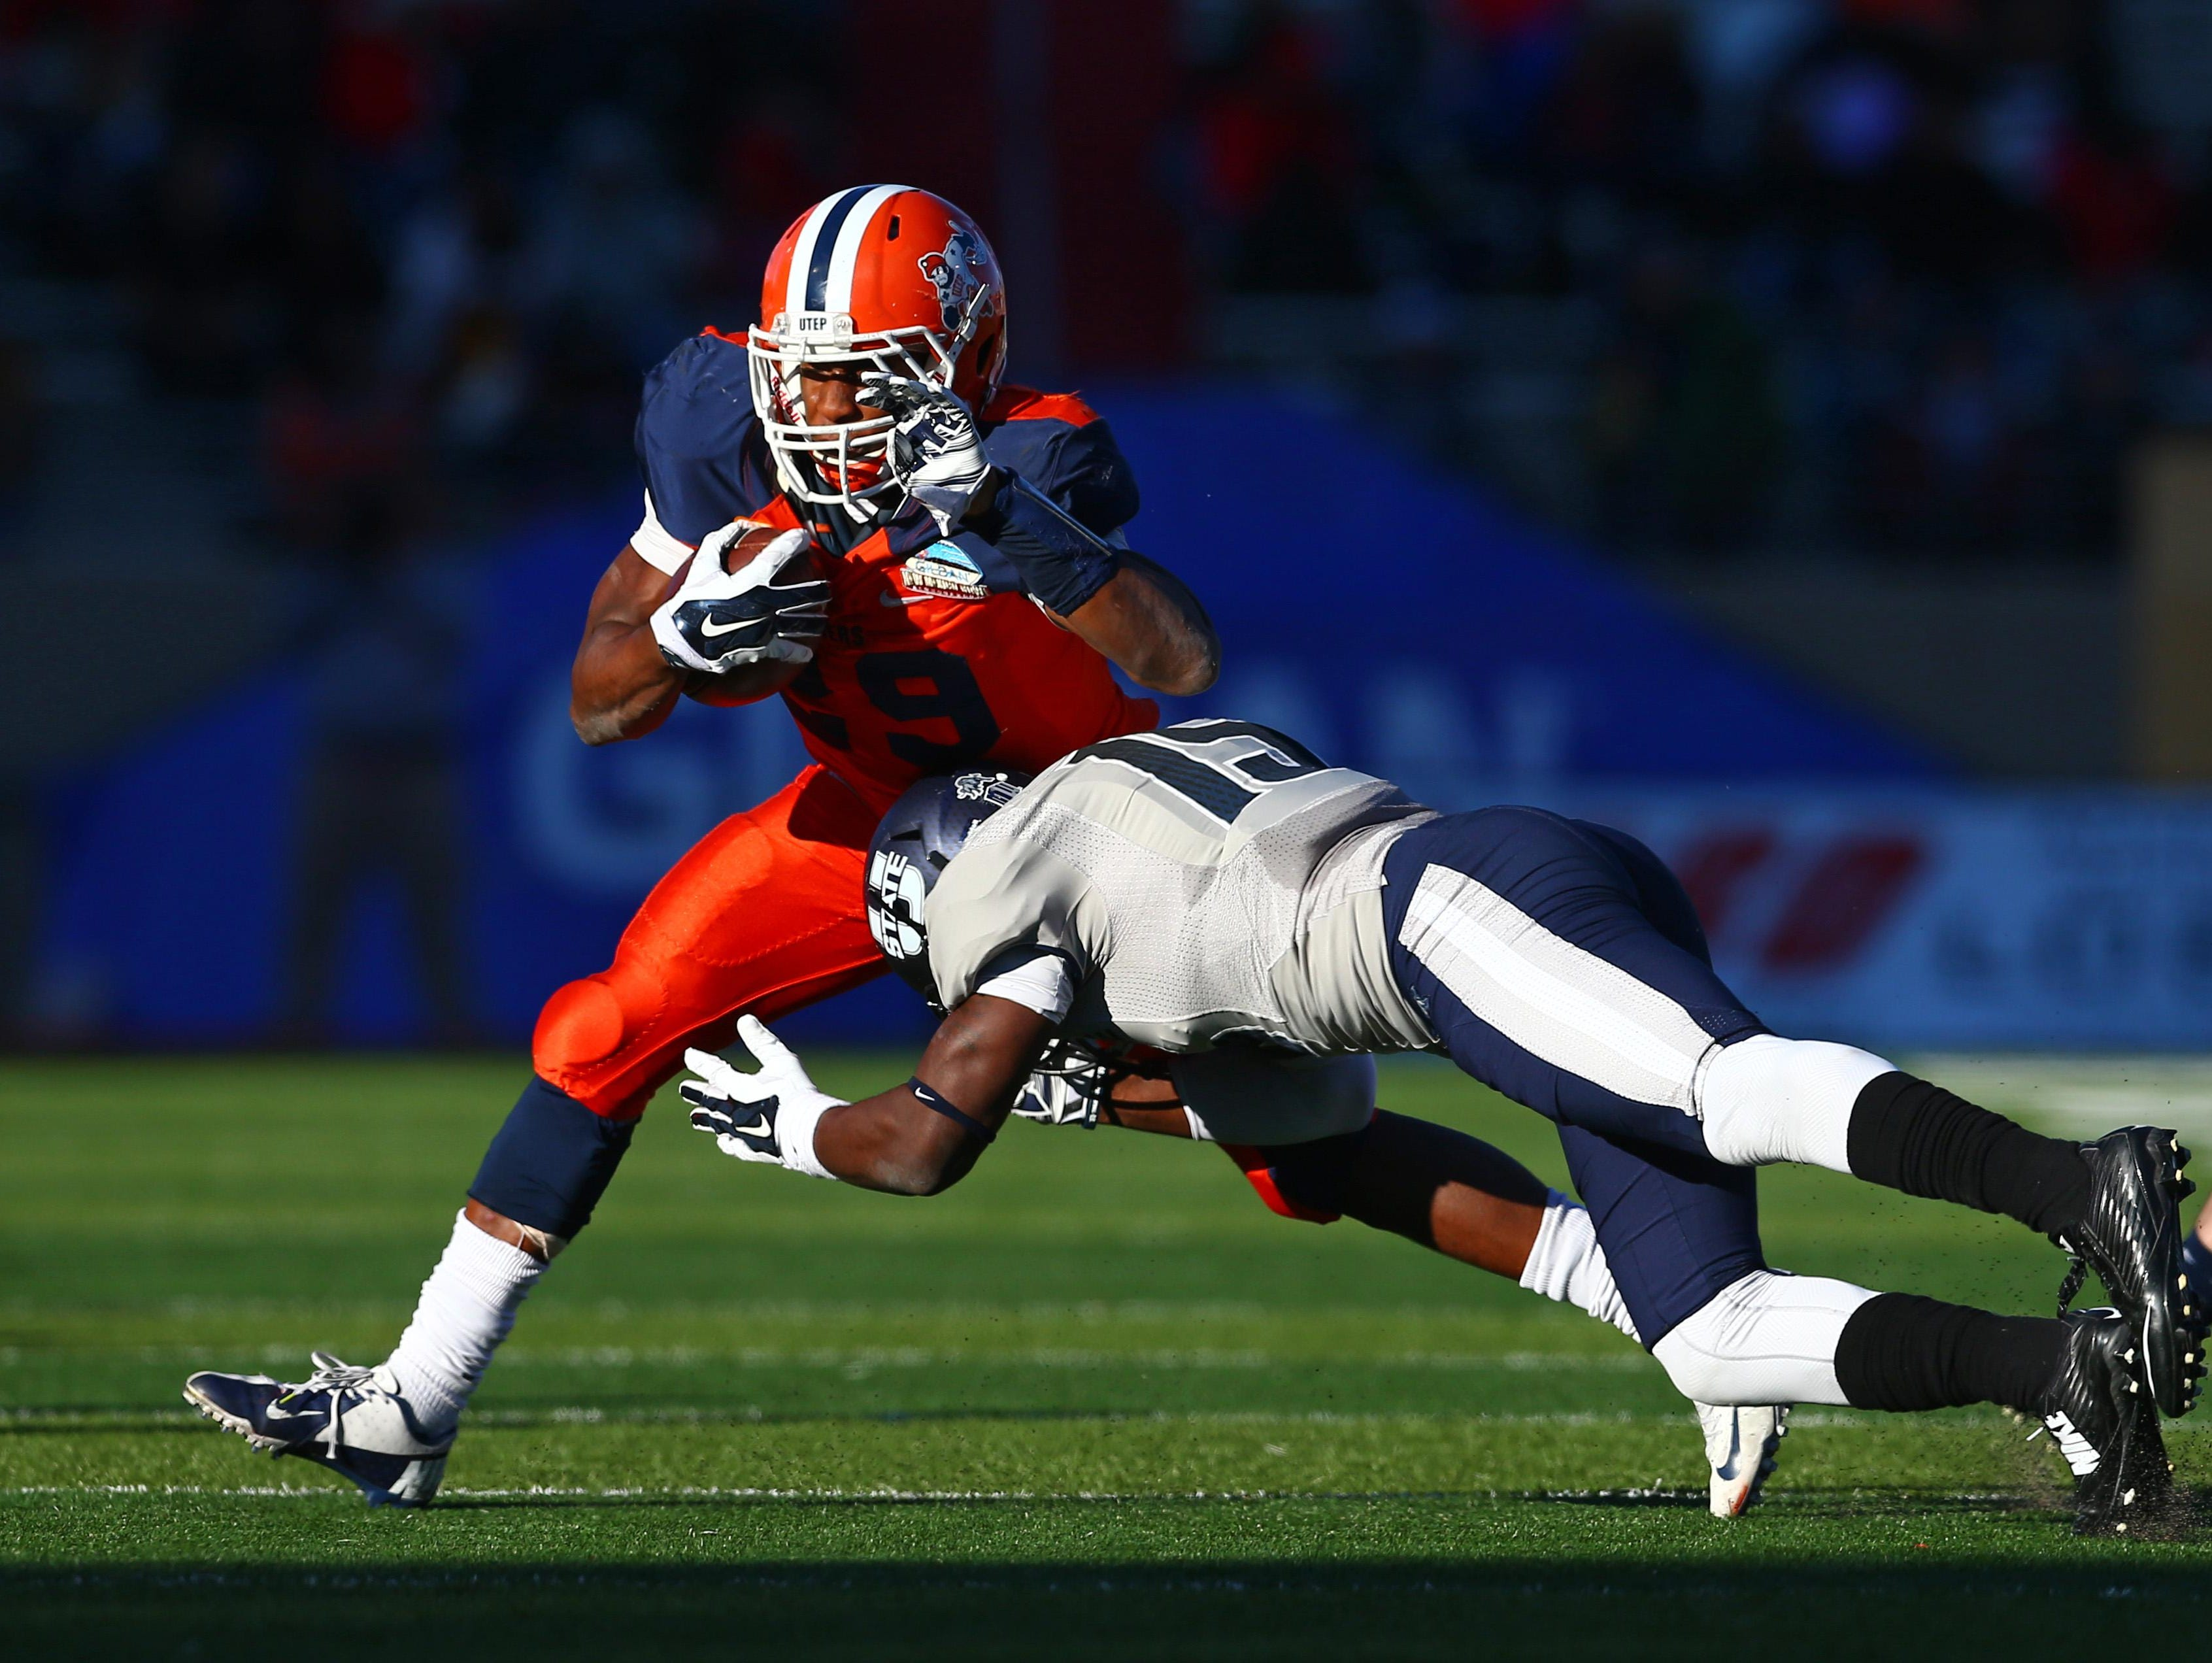 UTEP's junior running back Aaron Jones will be a focal point for the Arkansas defense. Jones has rushed for more than 1,000 yards in each of his first two seasons, including 1,321 yards in 2014.